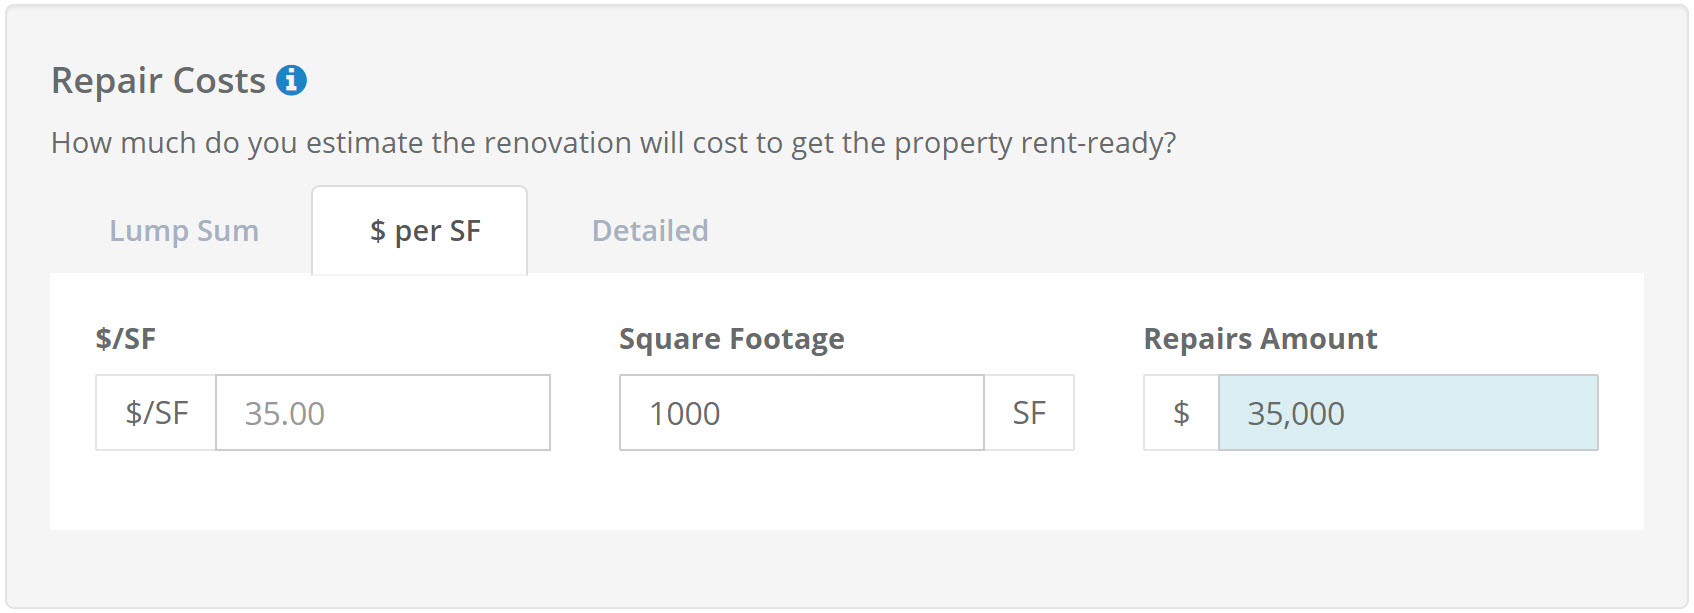 Rehab Estimate per SF